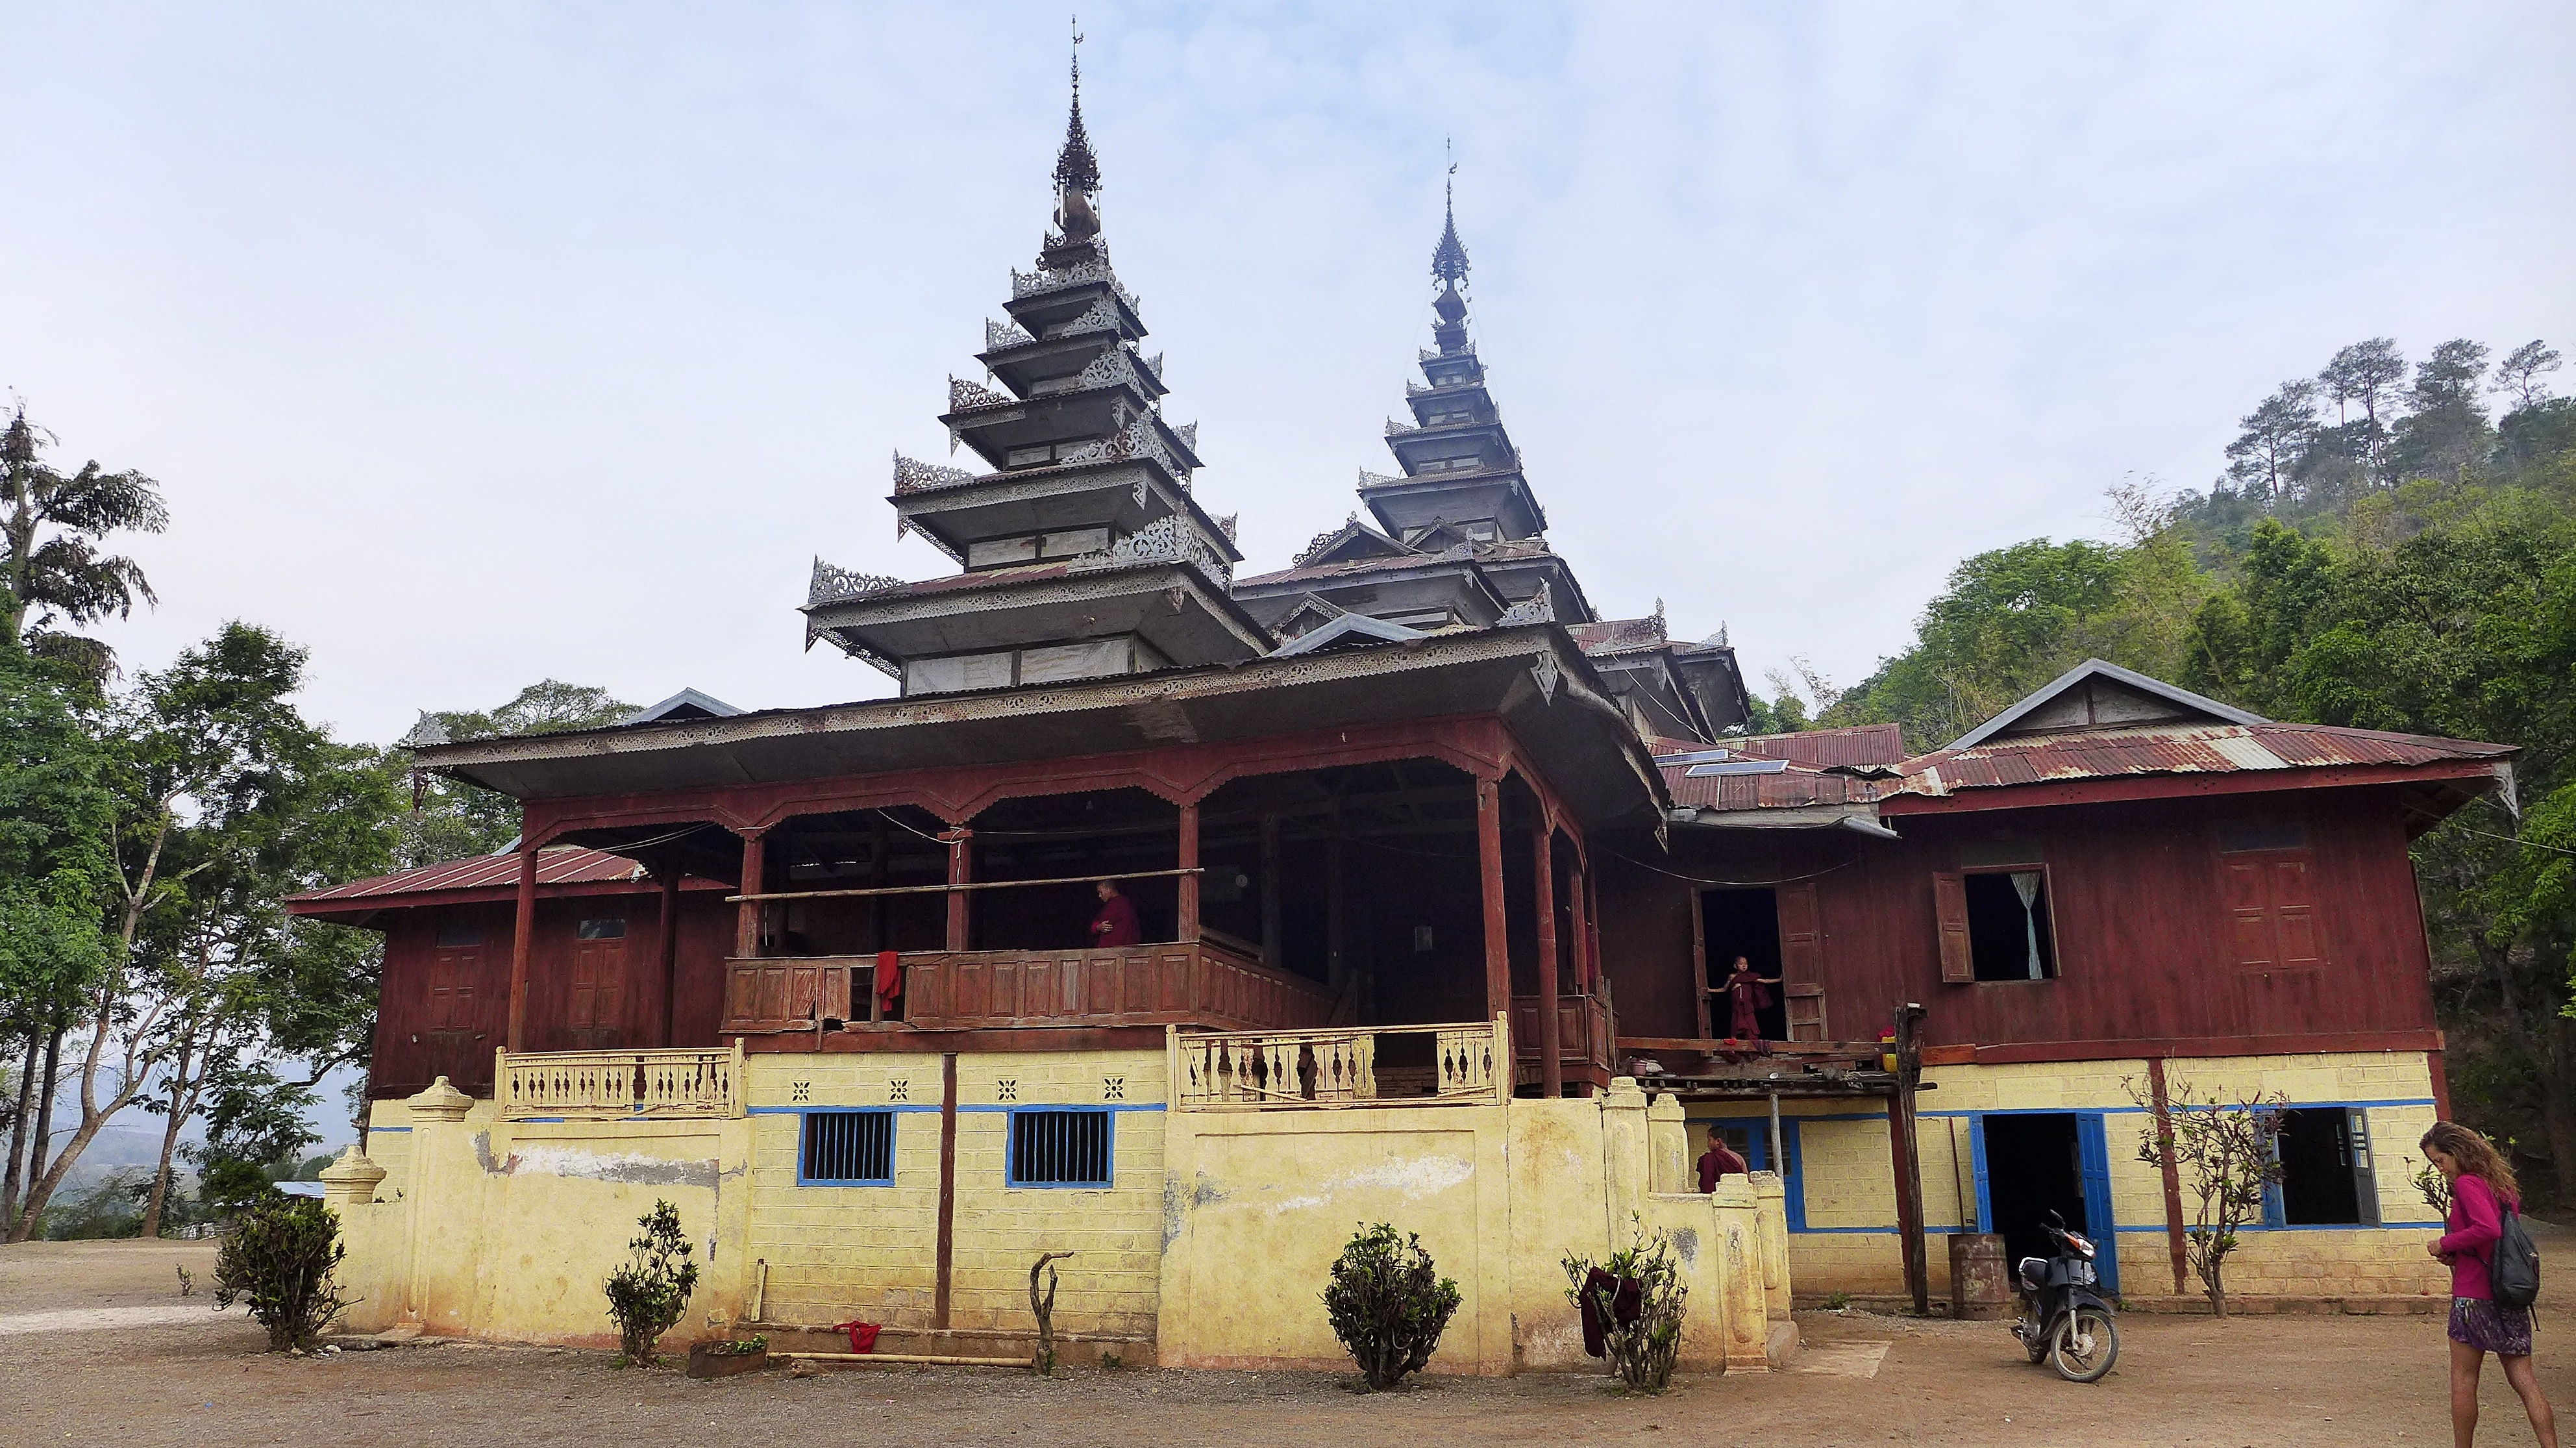 From Kalaw to Inle Lake